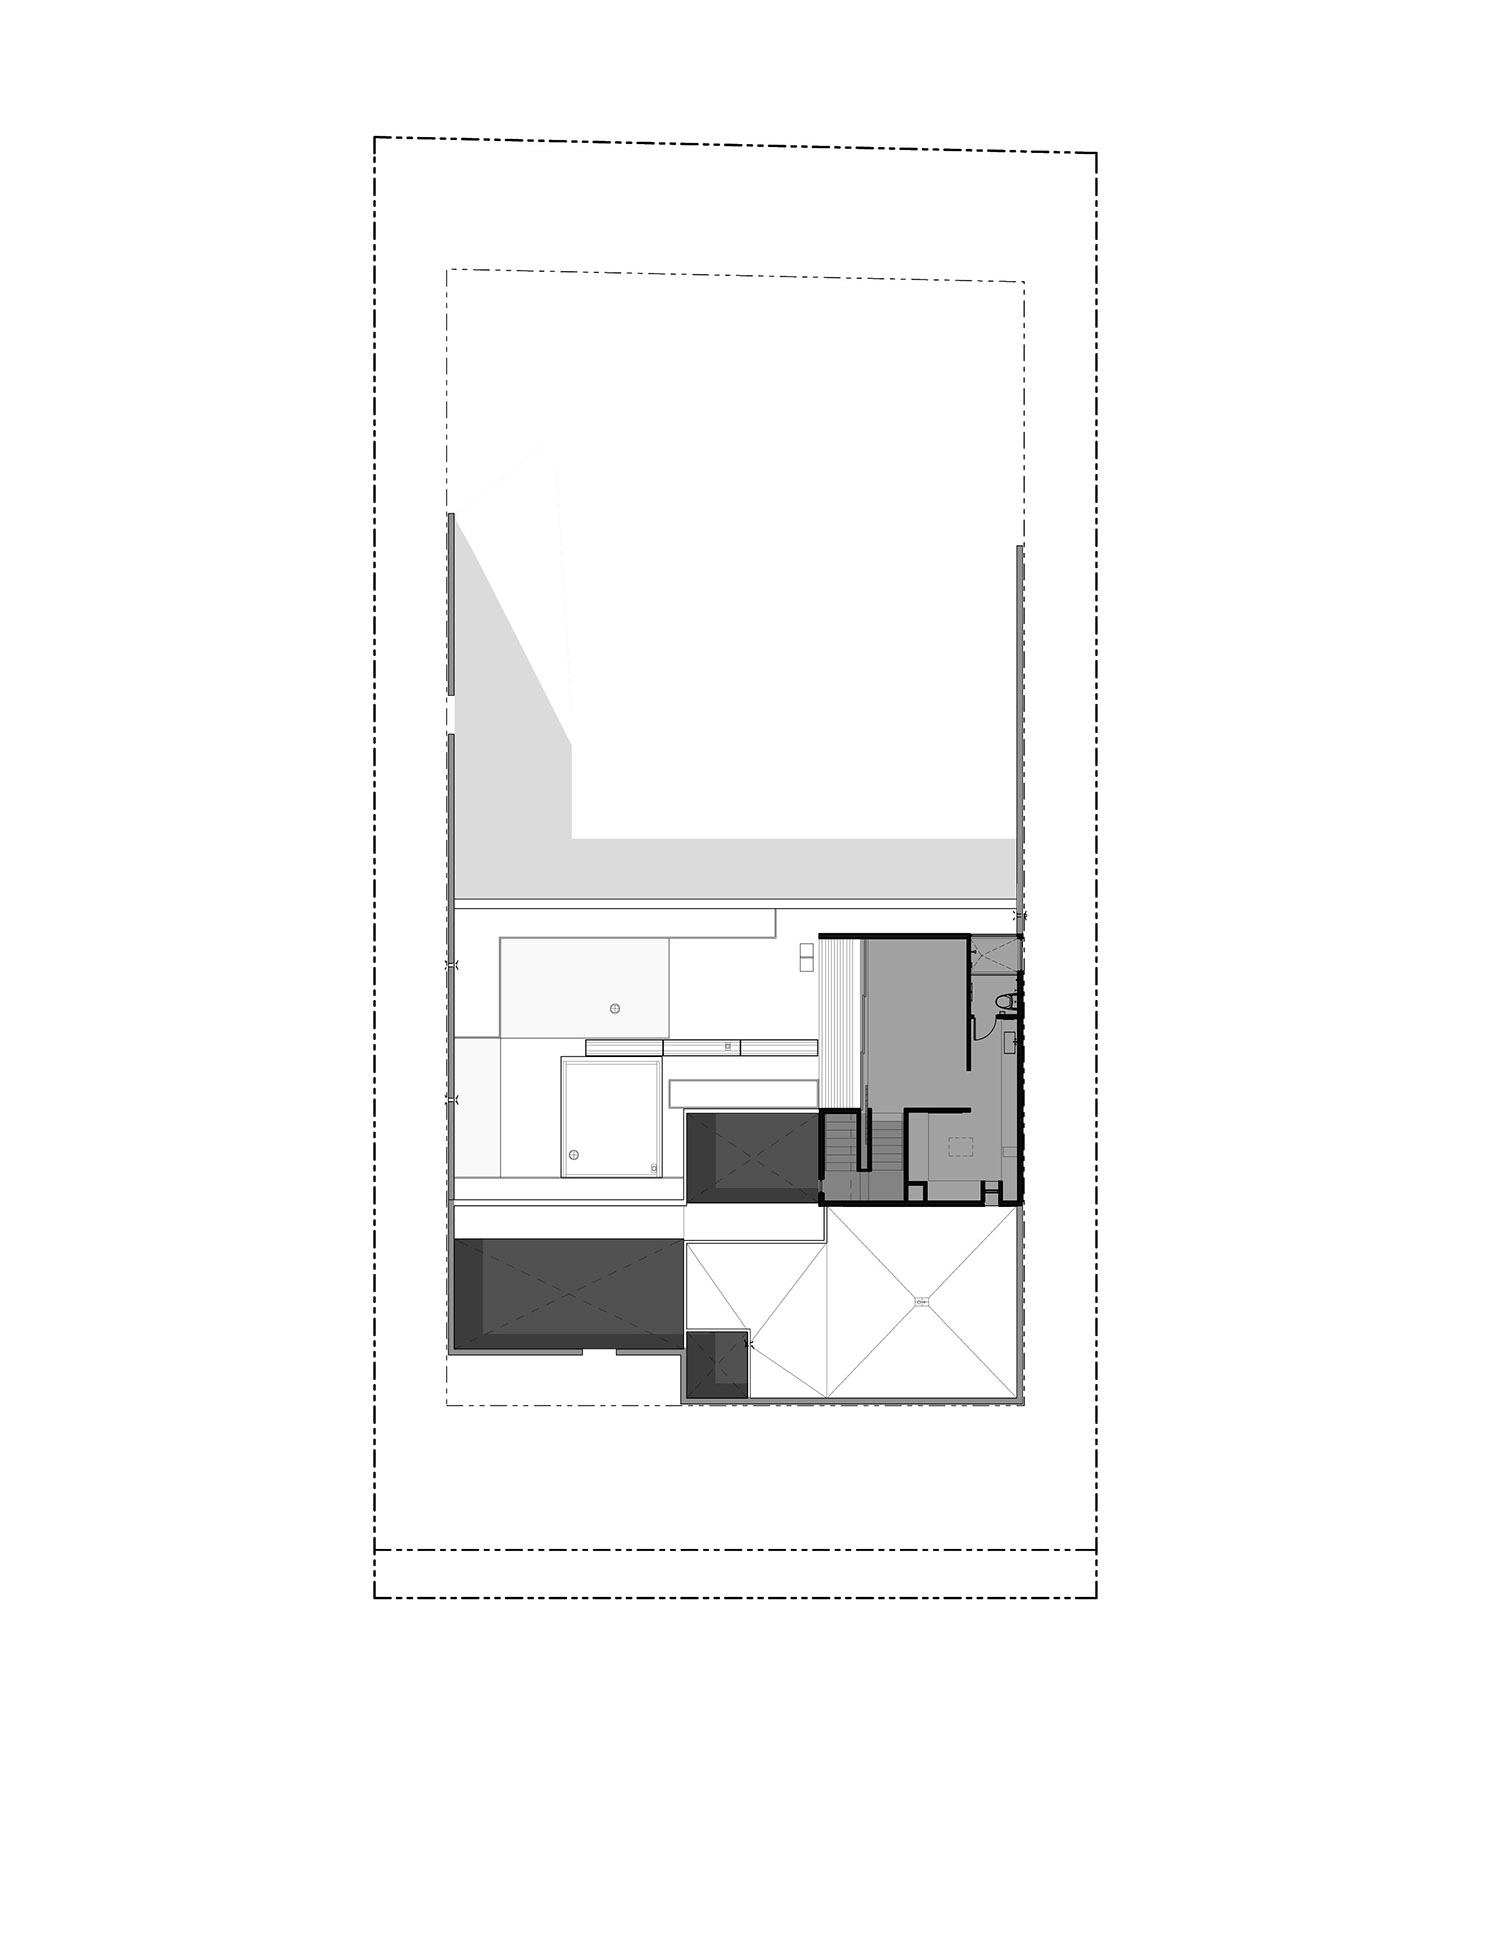 LEVEL 02 - The second story consists exclusively of the master bedroom suite and a walk-out, landscaped green roof. Atriums open to the koi ponds and rock gardens below